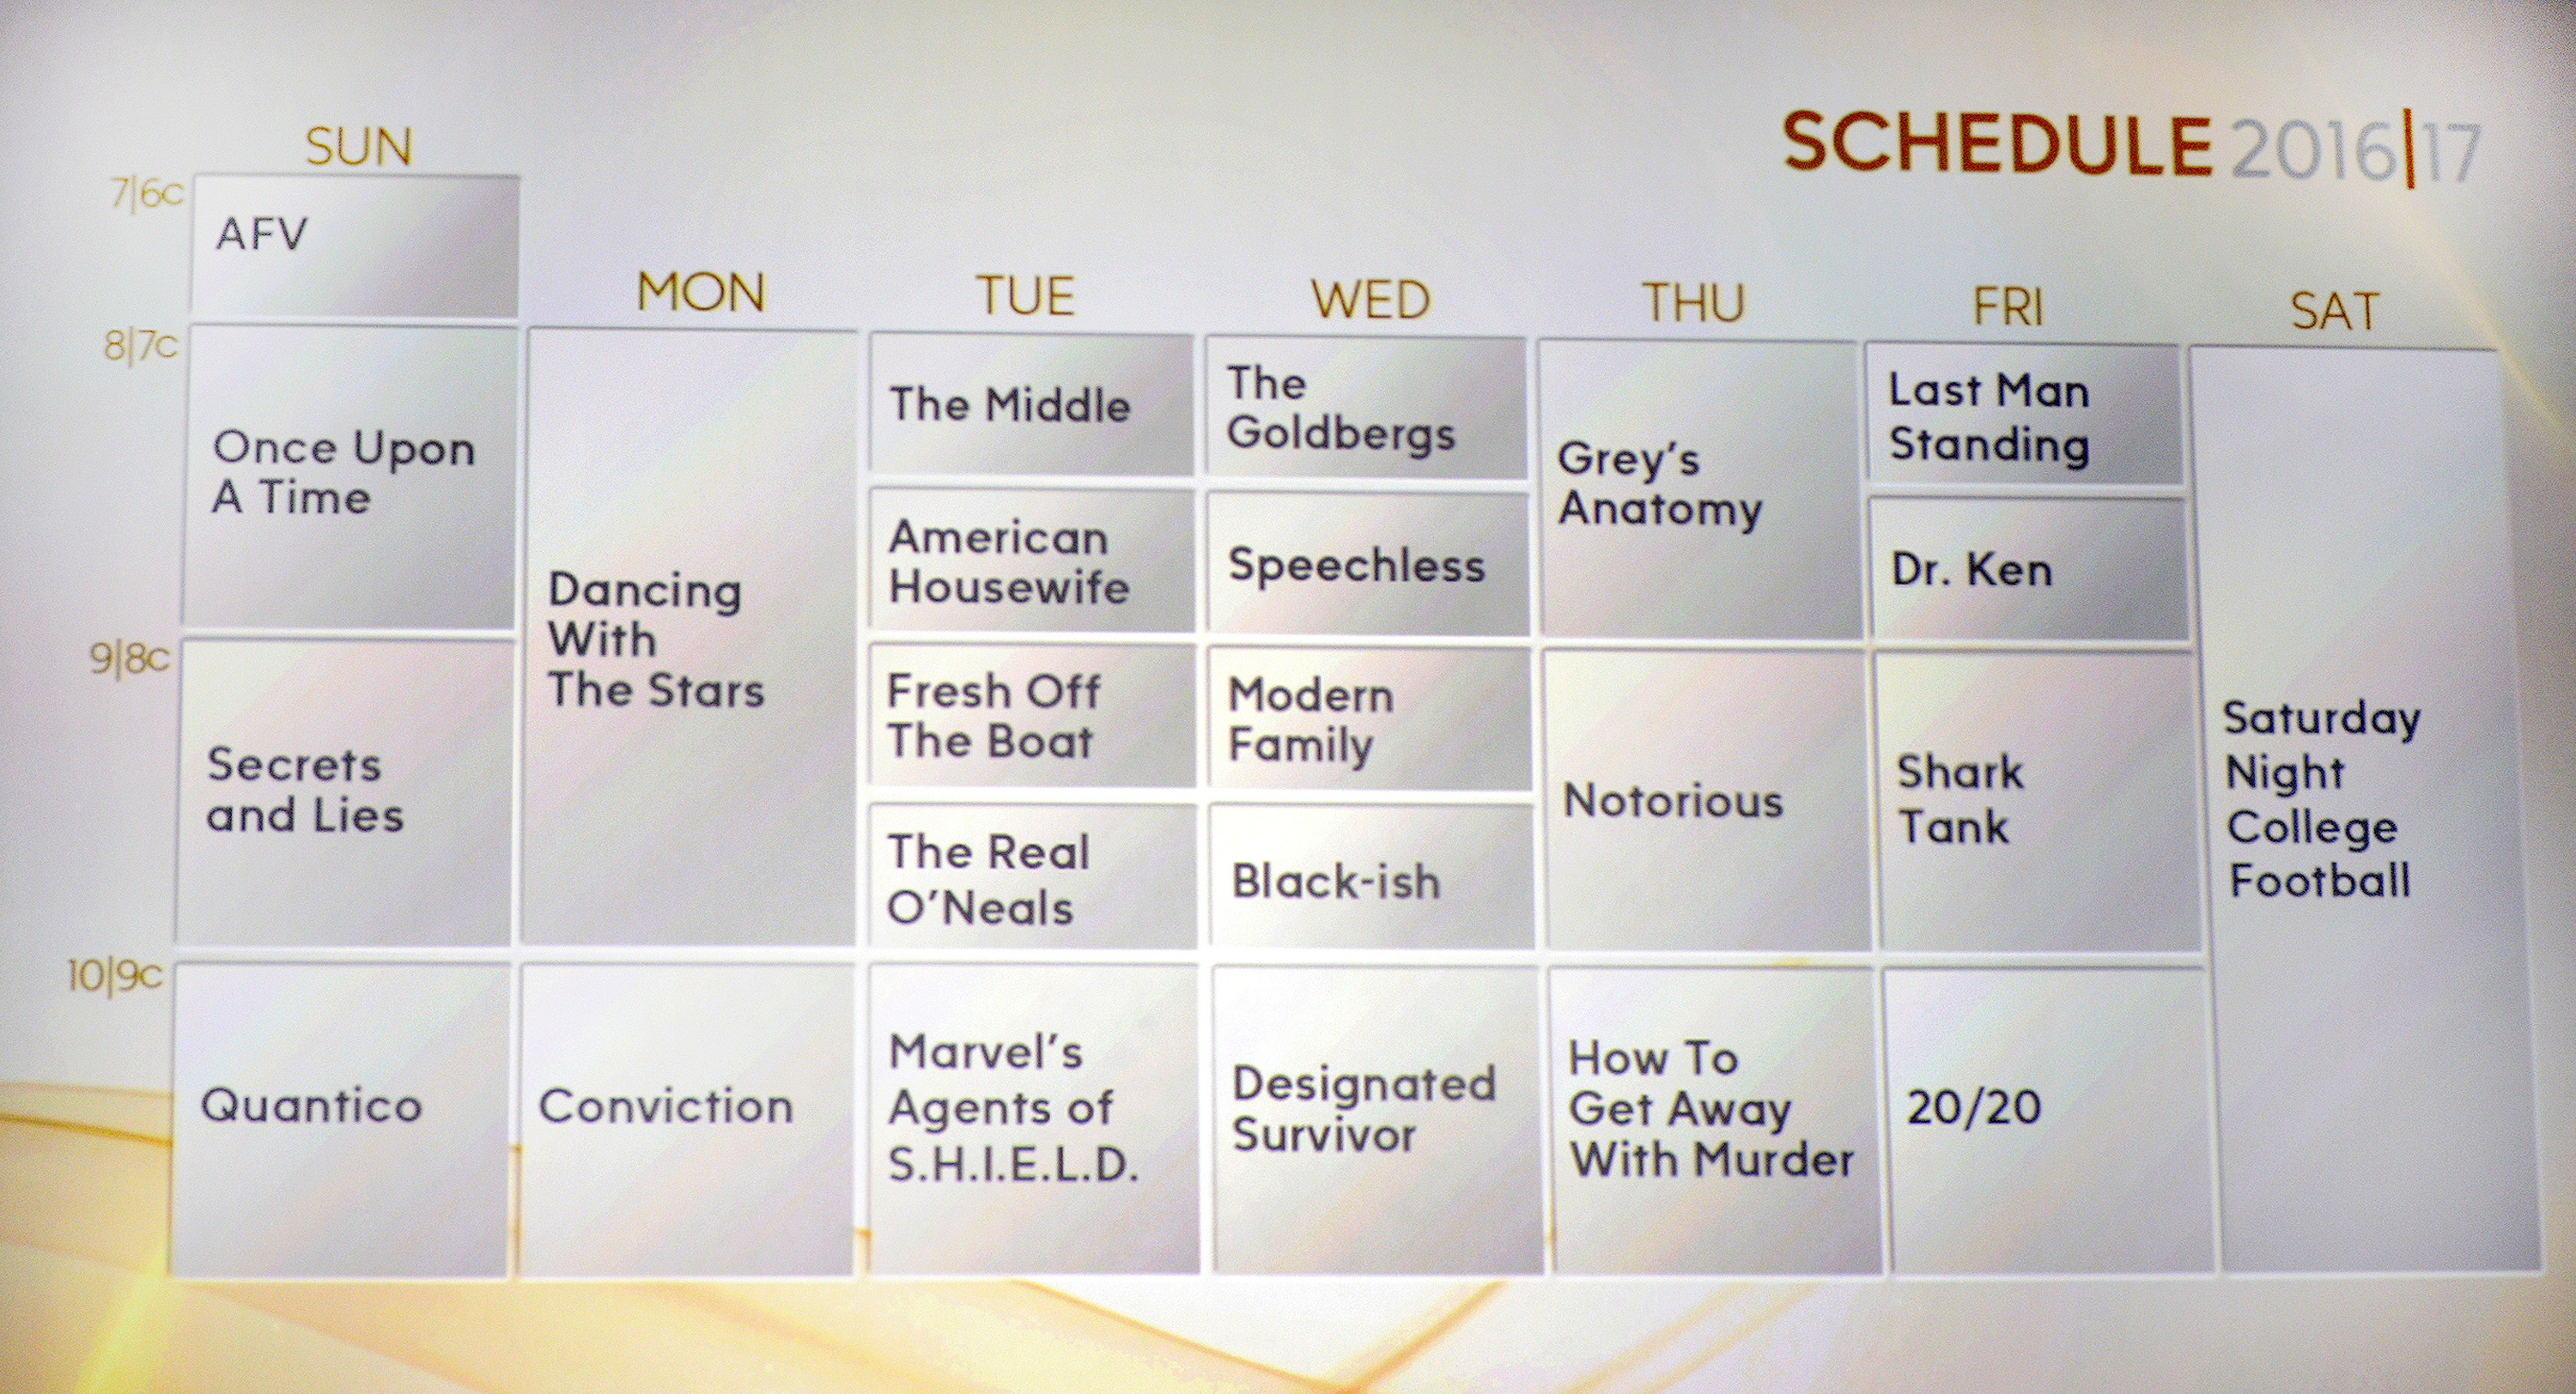 ABC Fall Schedule